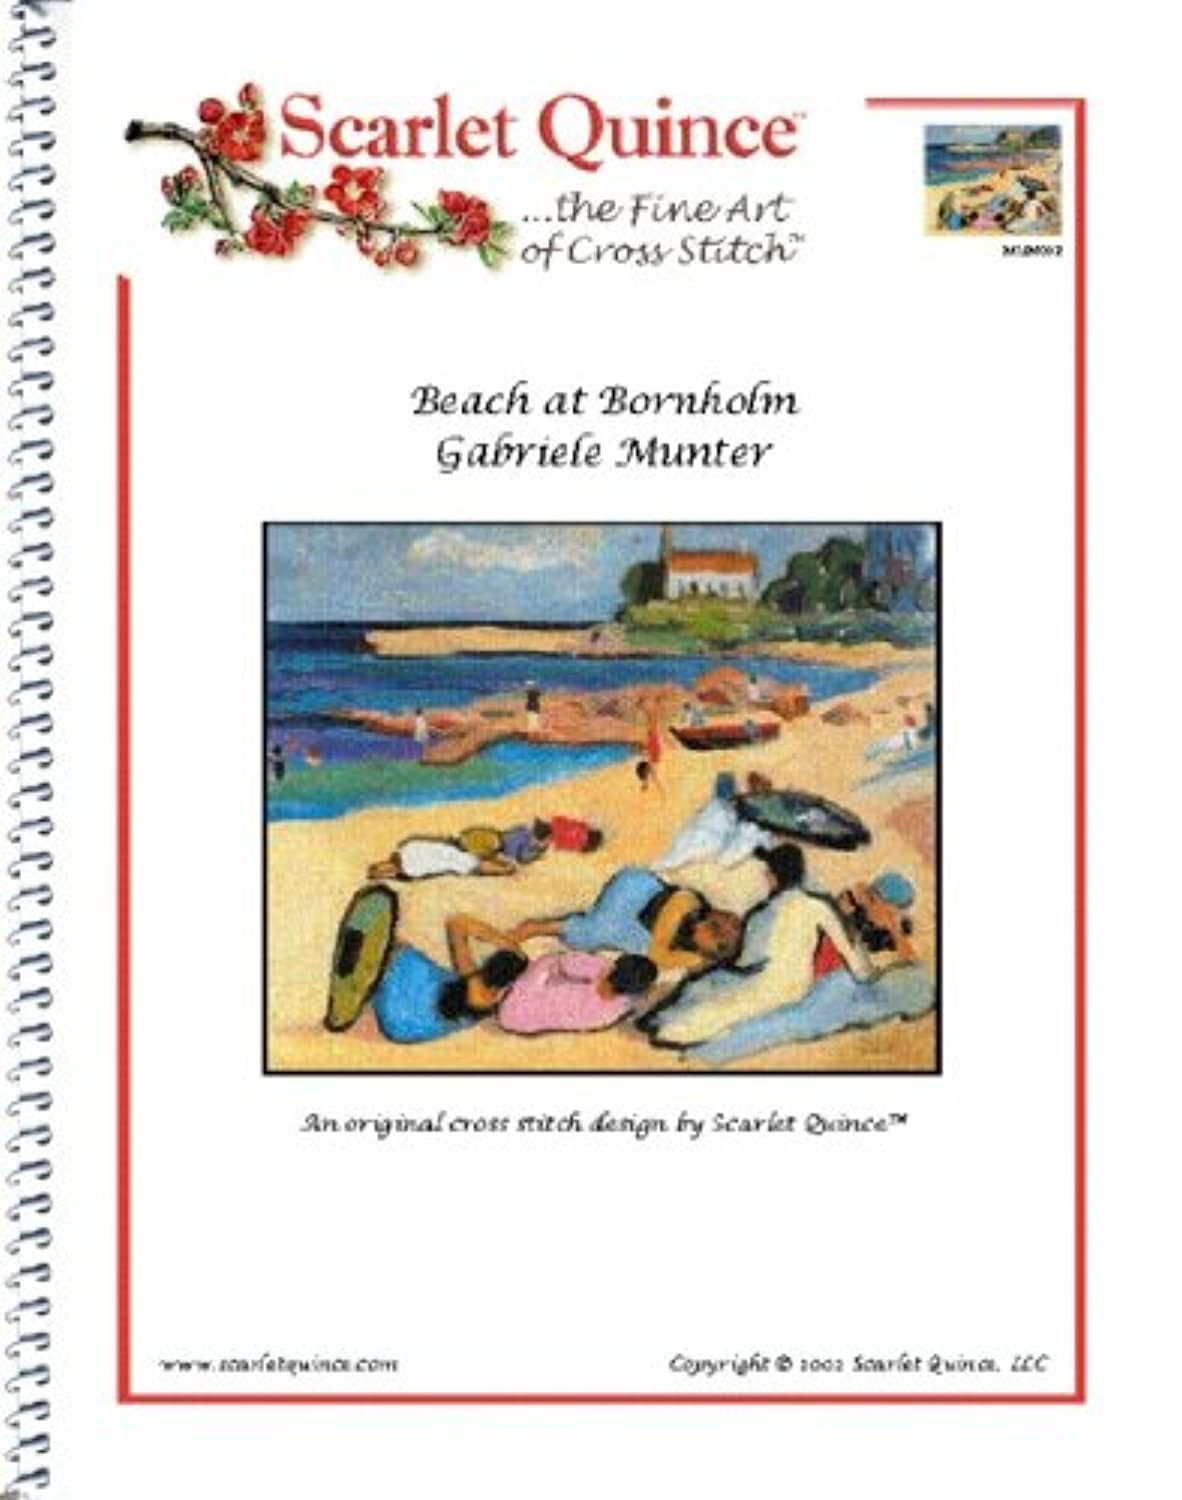 Scarlet Quince MUN002 Beach at Bornholm by Gabriele Munter Counted Cross Stitch Chart, Regular Size Symbols